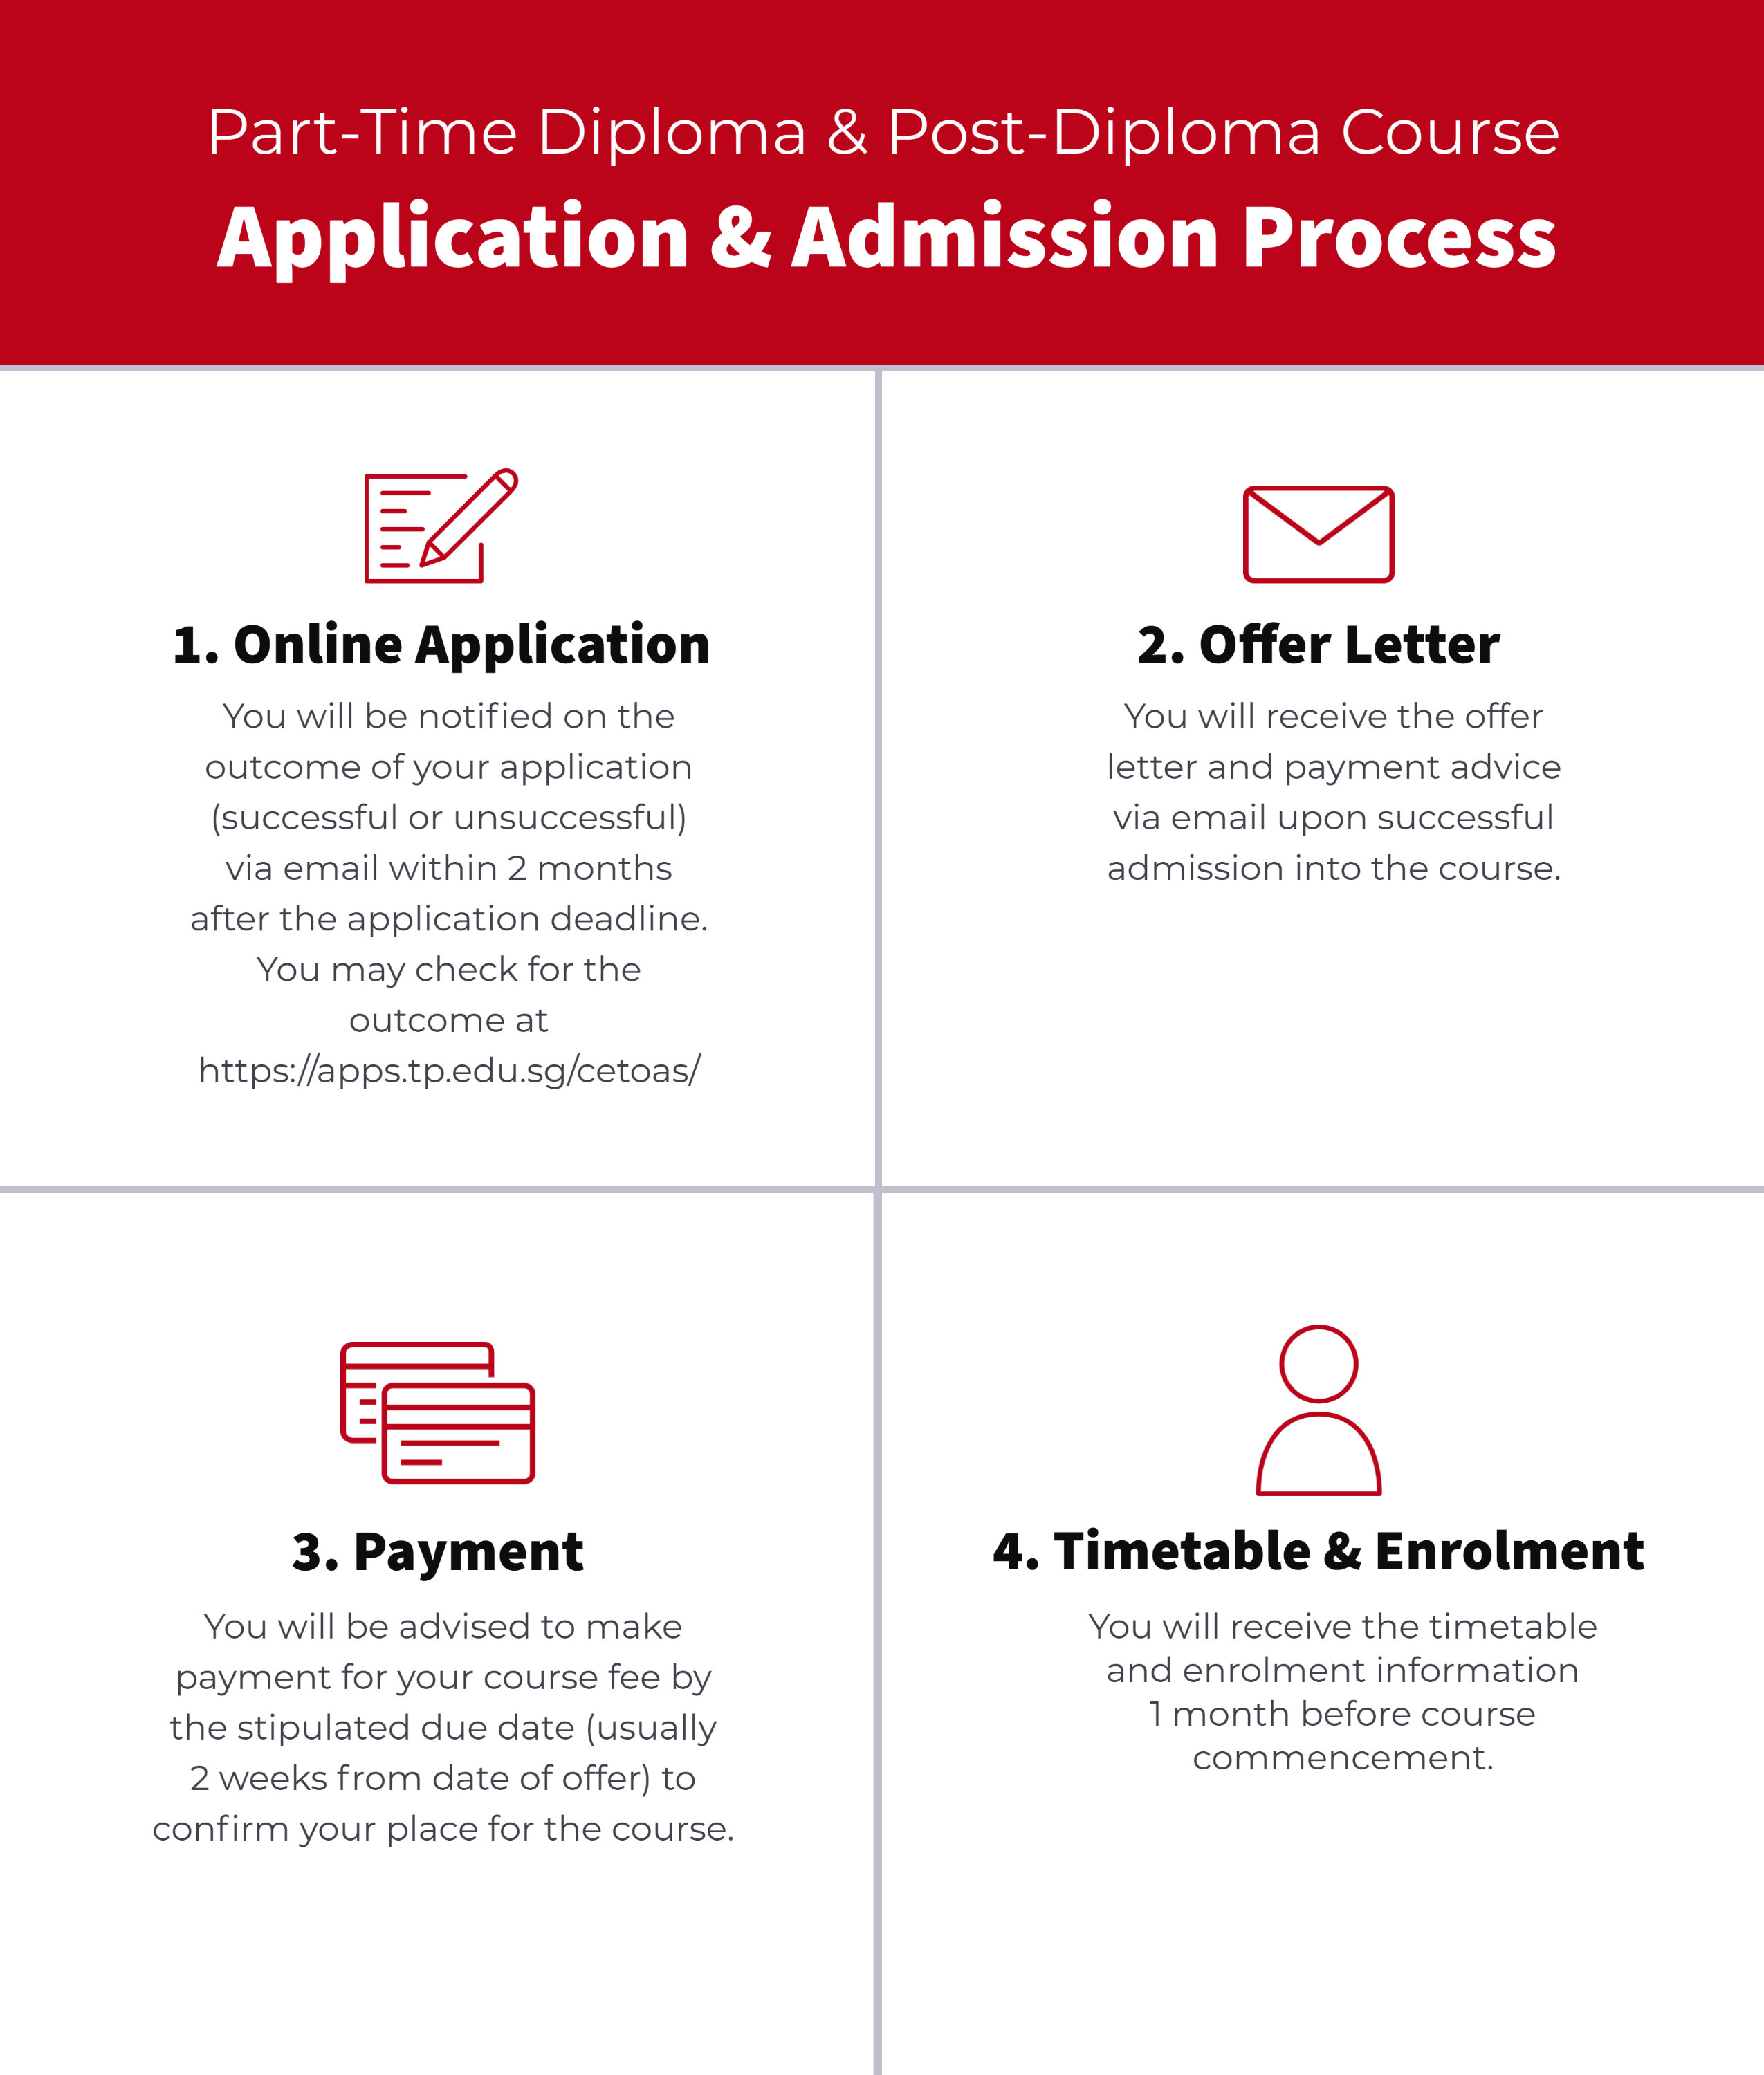 APPLICATION GUIDE FOR PART-TIME DIPLOMA & POST-DIPLOMA COURSE-Admission process